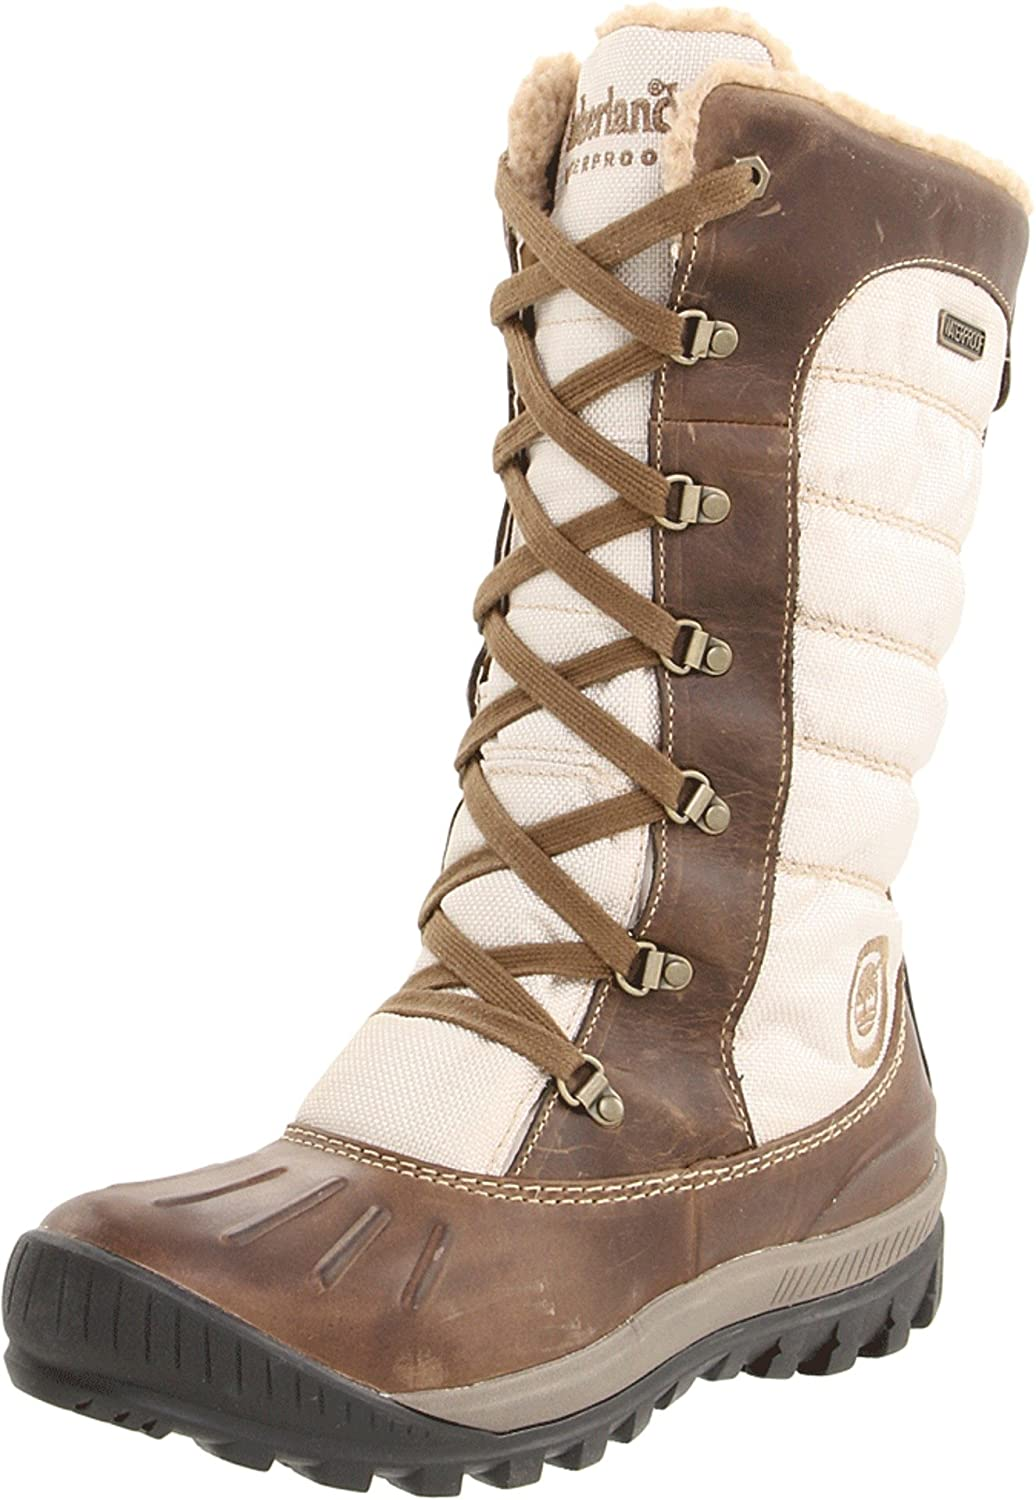 Timberland Women's Mount Holly Tall Duck Knee-High Boot